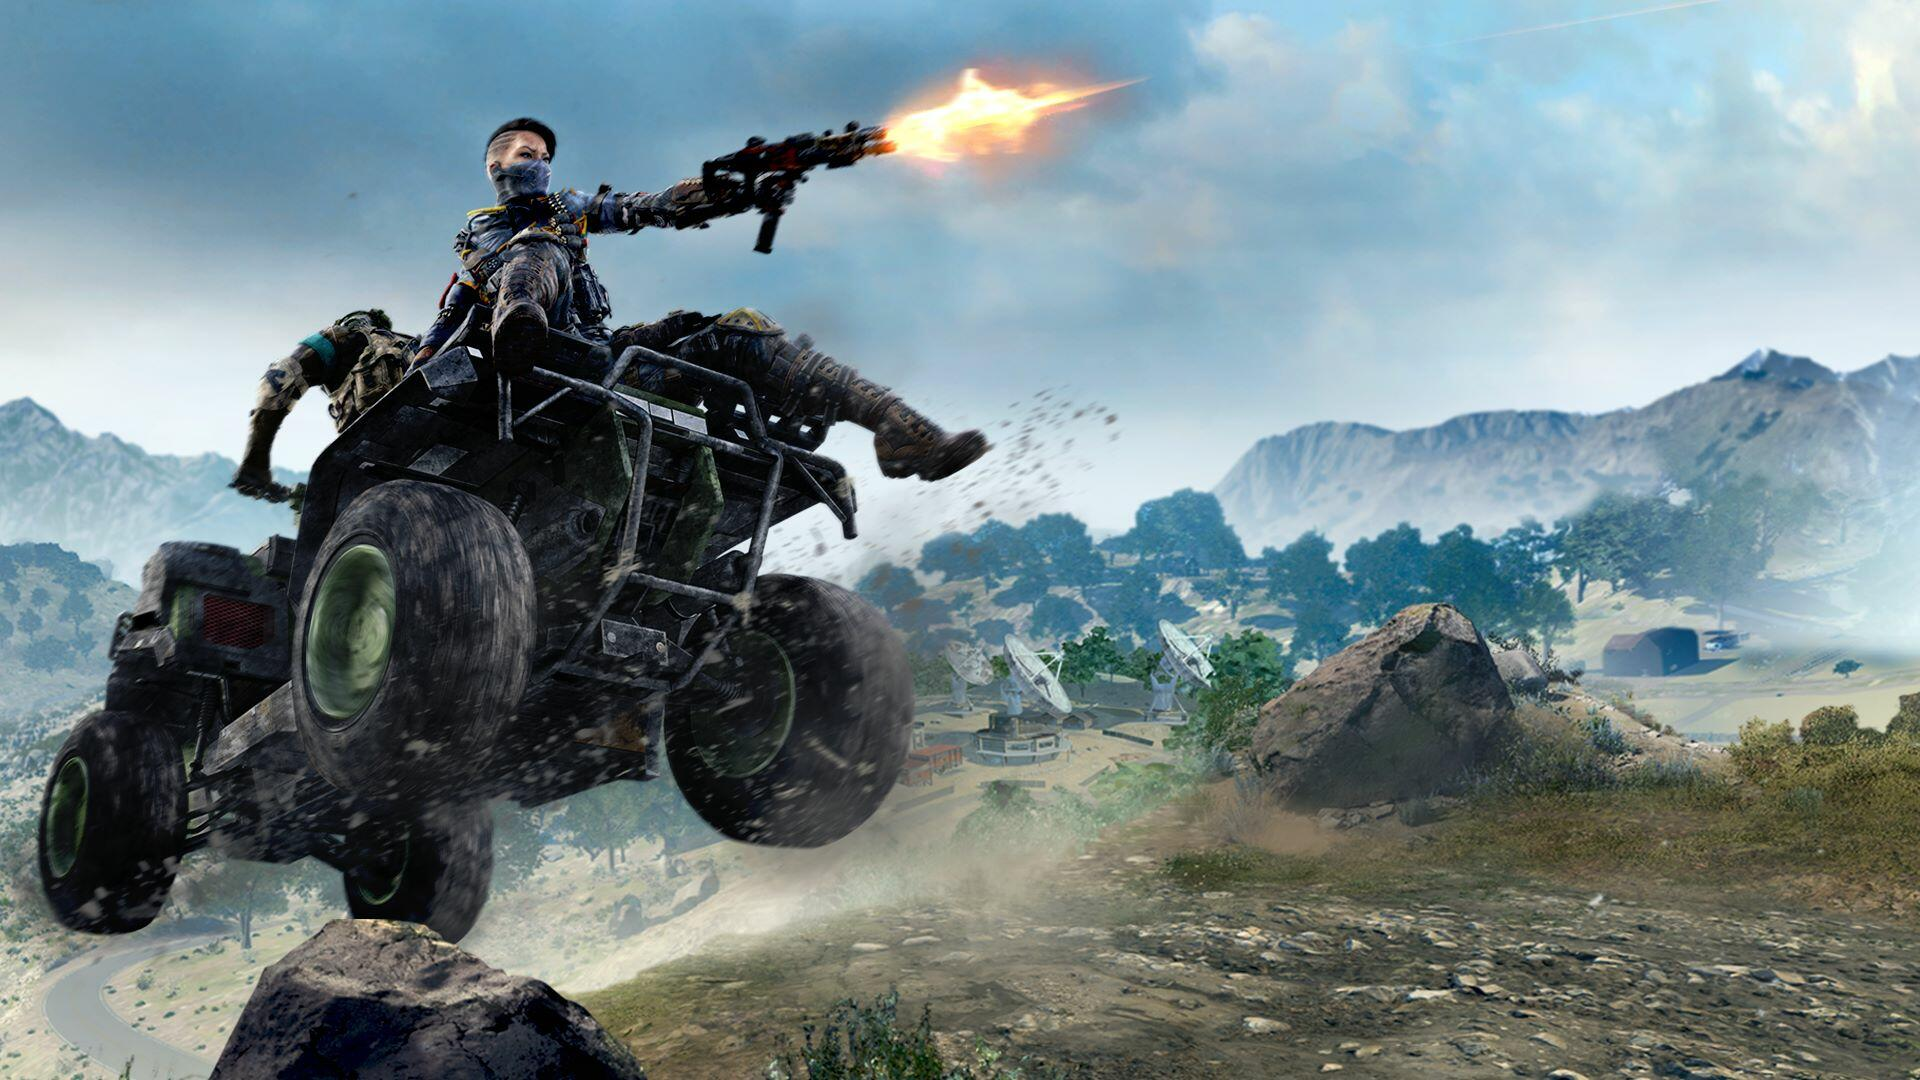 Call of Duty: Black Ops 4 Originally Did Have a Campaign and It Was a Co-Op, PvP Mode